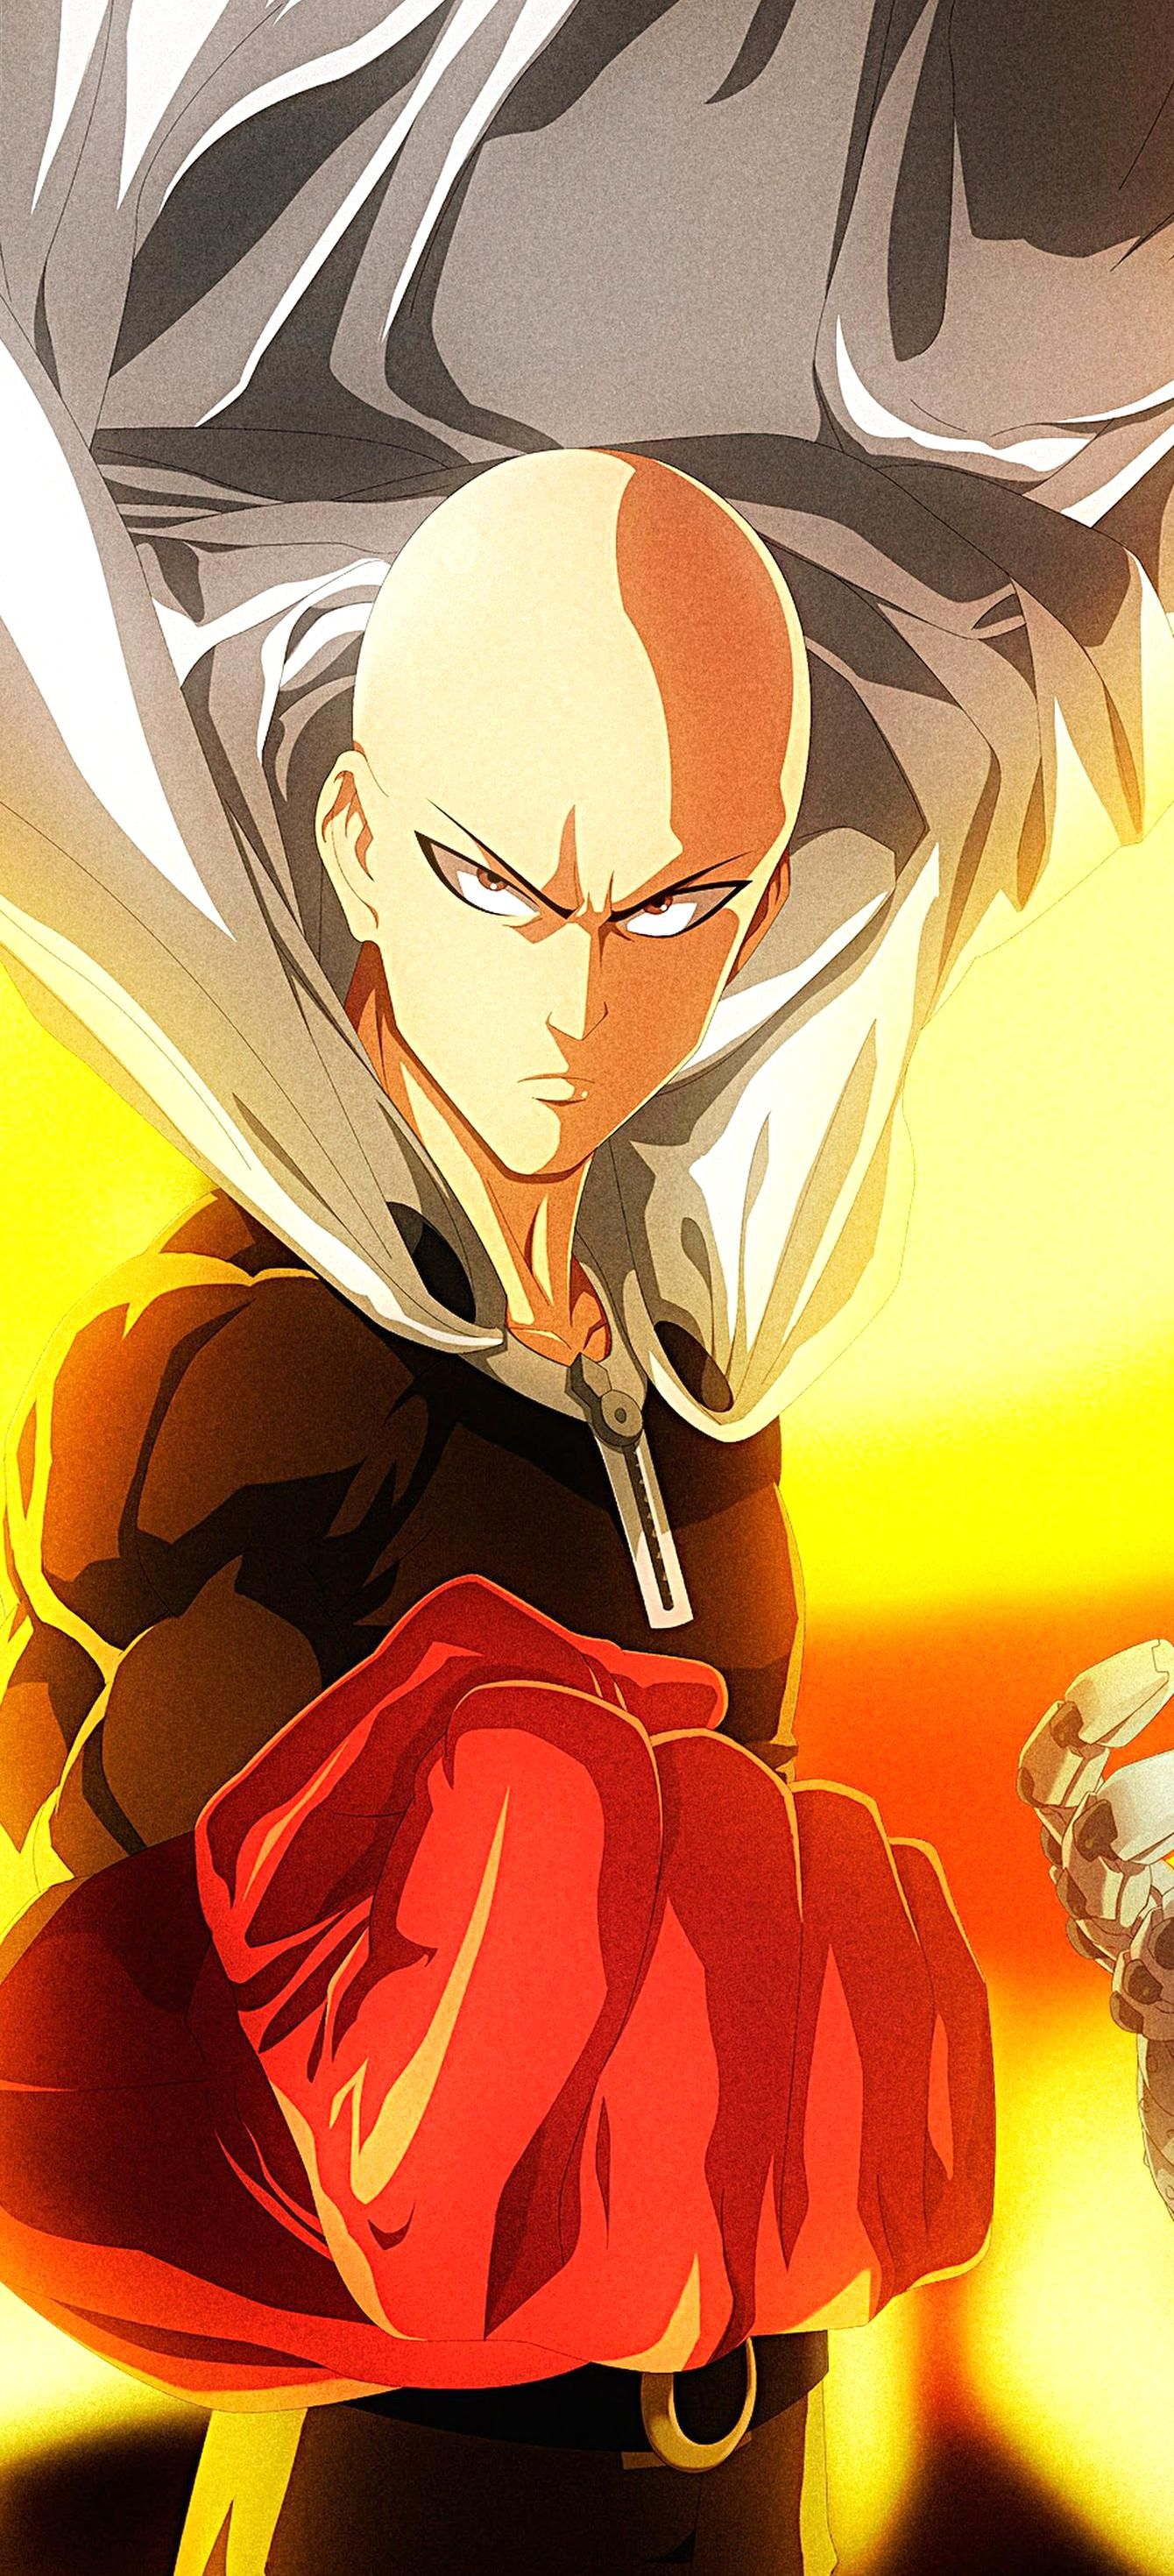 One Punch Man Wallpaper Iphone 4 One Punch Man Saitama Sonic Genos 4k Wallpaper 112 One Punch Man Season In 2020 One Punch Man Anime Cute Pokemon Wallpaper One Punch